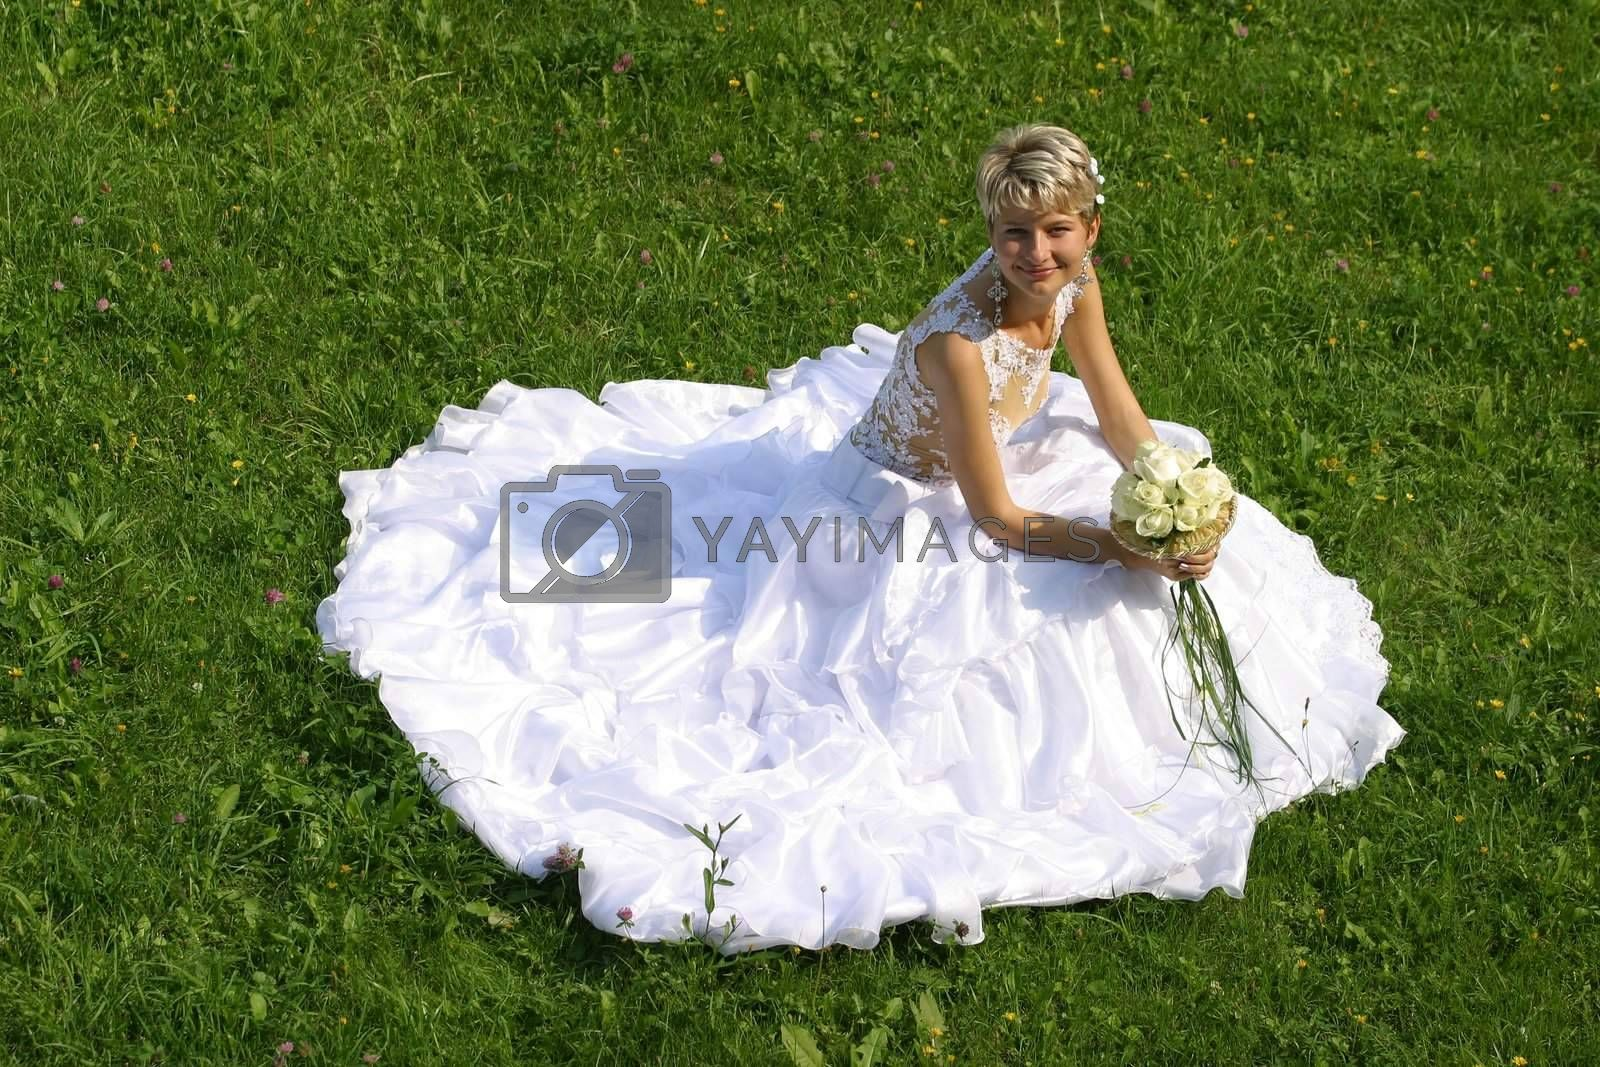 The beautiful bride with a wedding bouquet sits on a grass